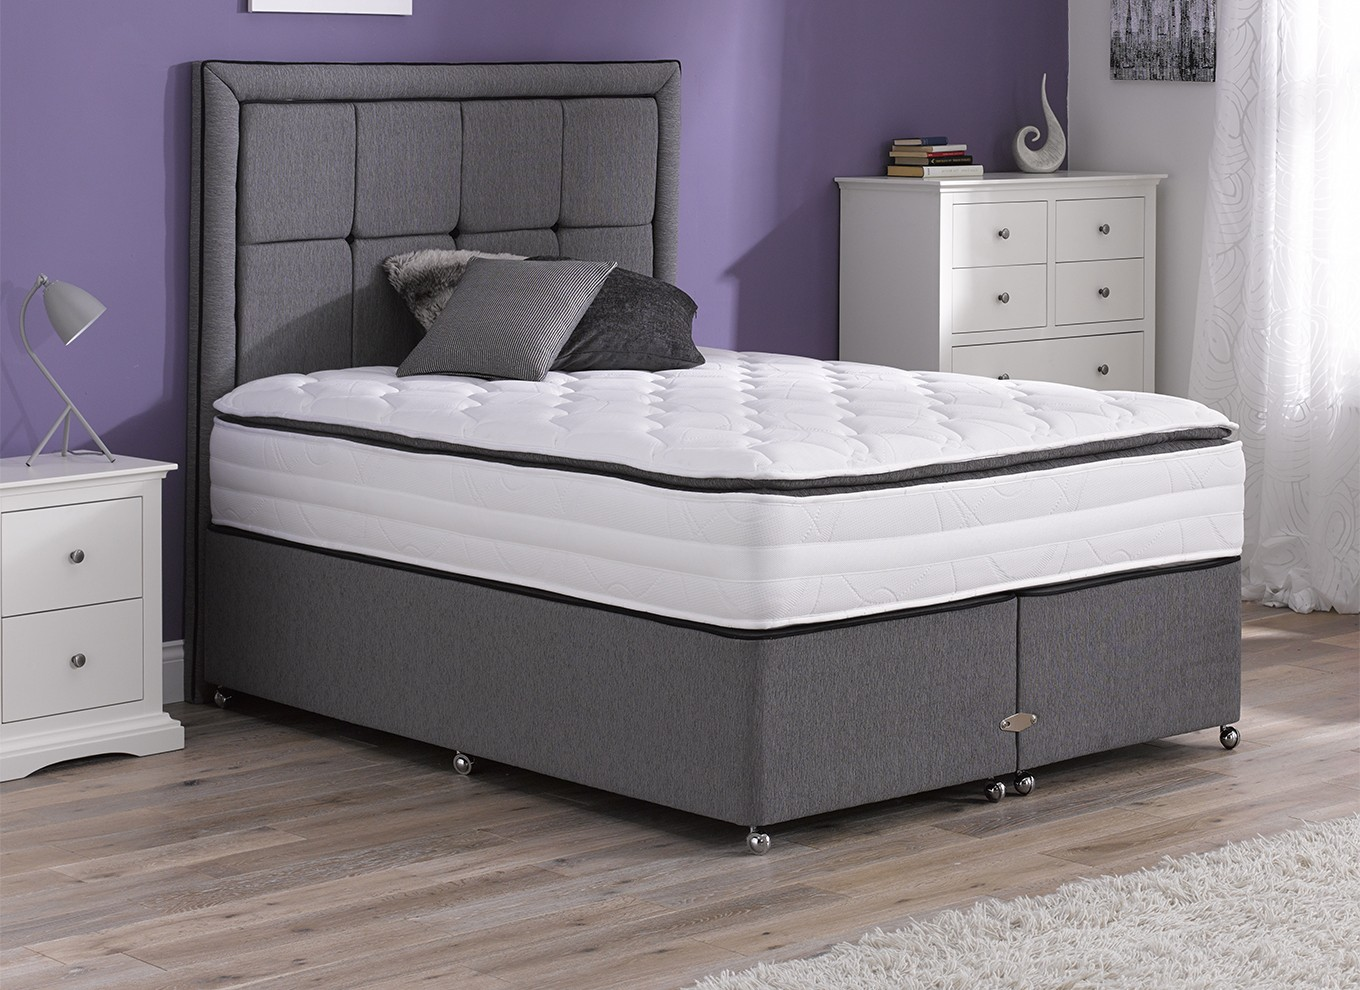 6 0 super king divan beds for Super king divan bed